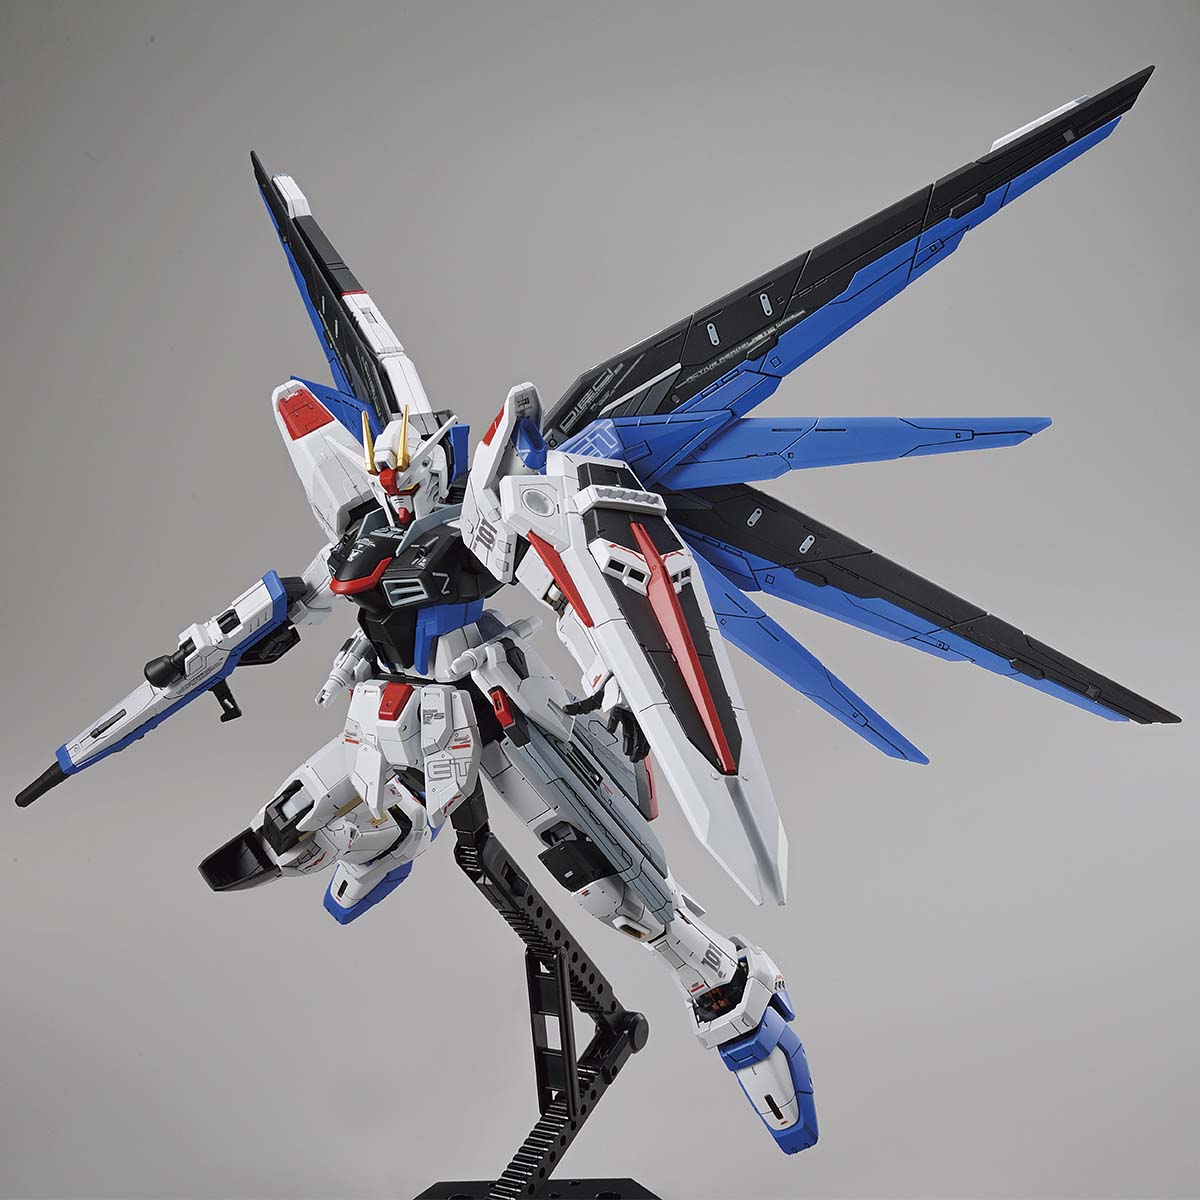 FULL MECHANICS 1/100 THE GUNDAM BASE LIMITED ZGMF-X10A FREEDOM GUNDAM Ver.GCP [Sep 2021 Delivery]